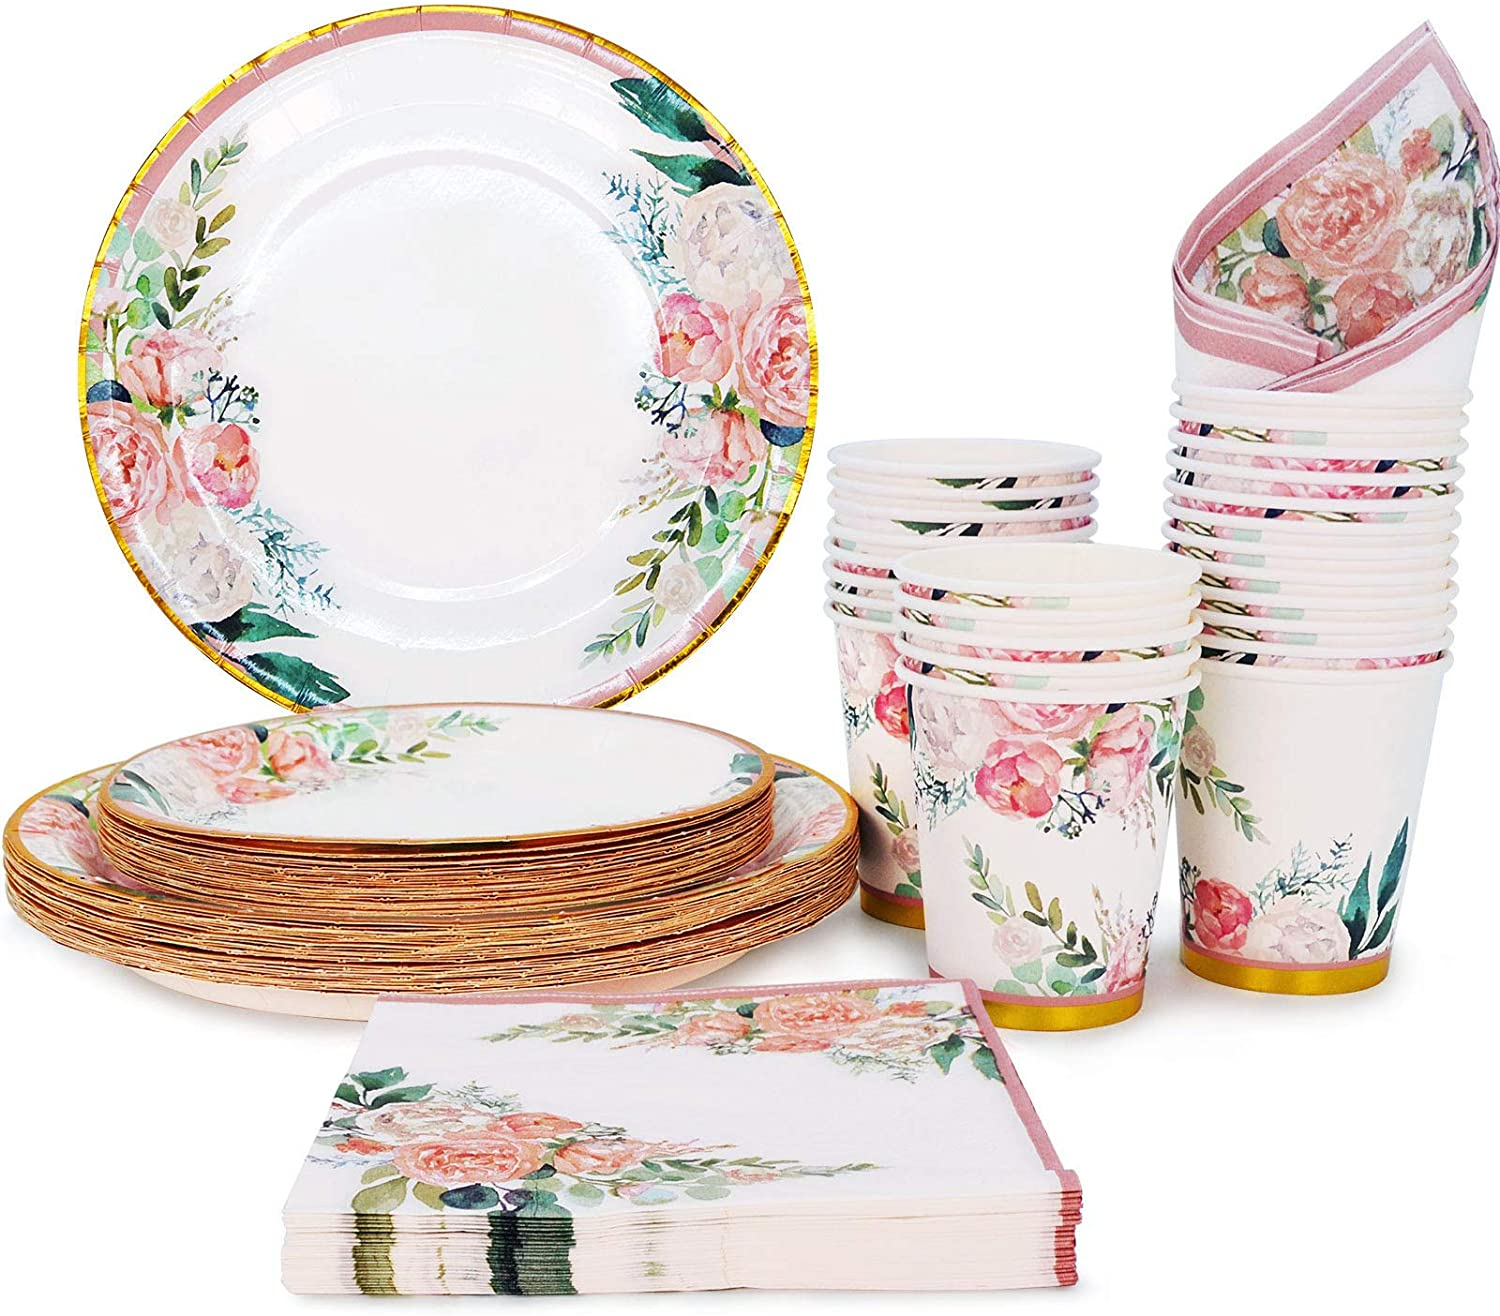 Floral Party Supplies paper plates and Napkins Sets for 24 Guest-Include Floral Party Disposable Paper Dinner Plates,Cups,Napkin for Baby or Bridal Shower,Birthday,Wedding,Bachelorette party Supplies